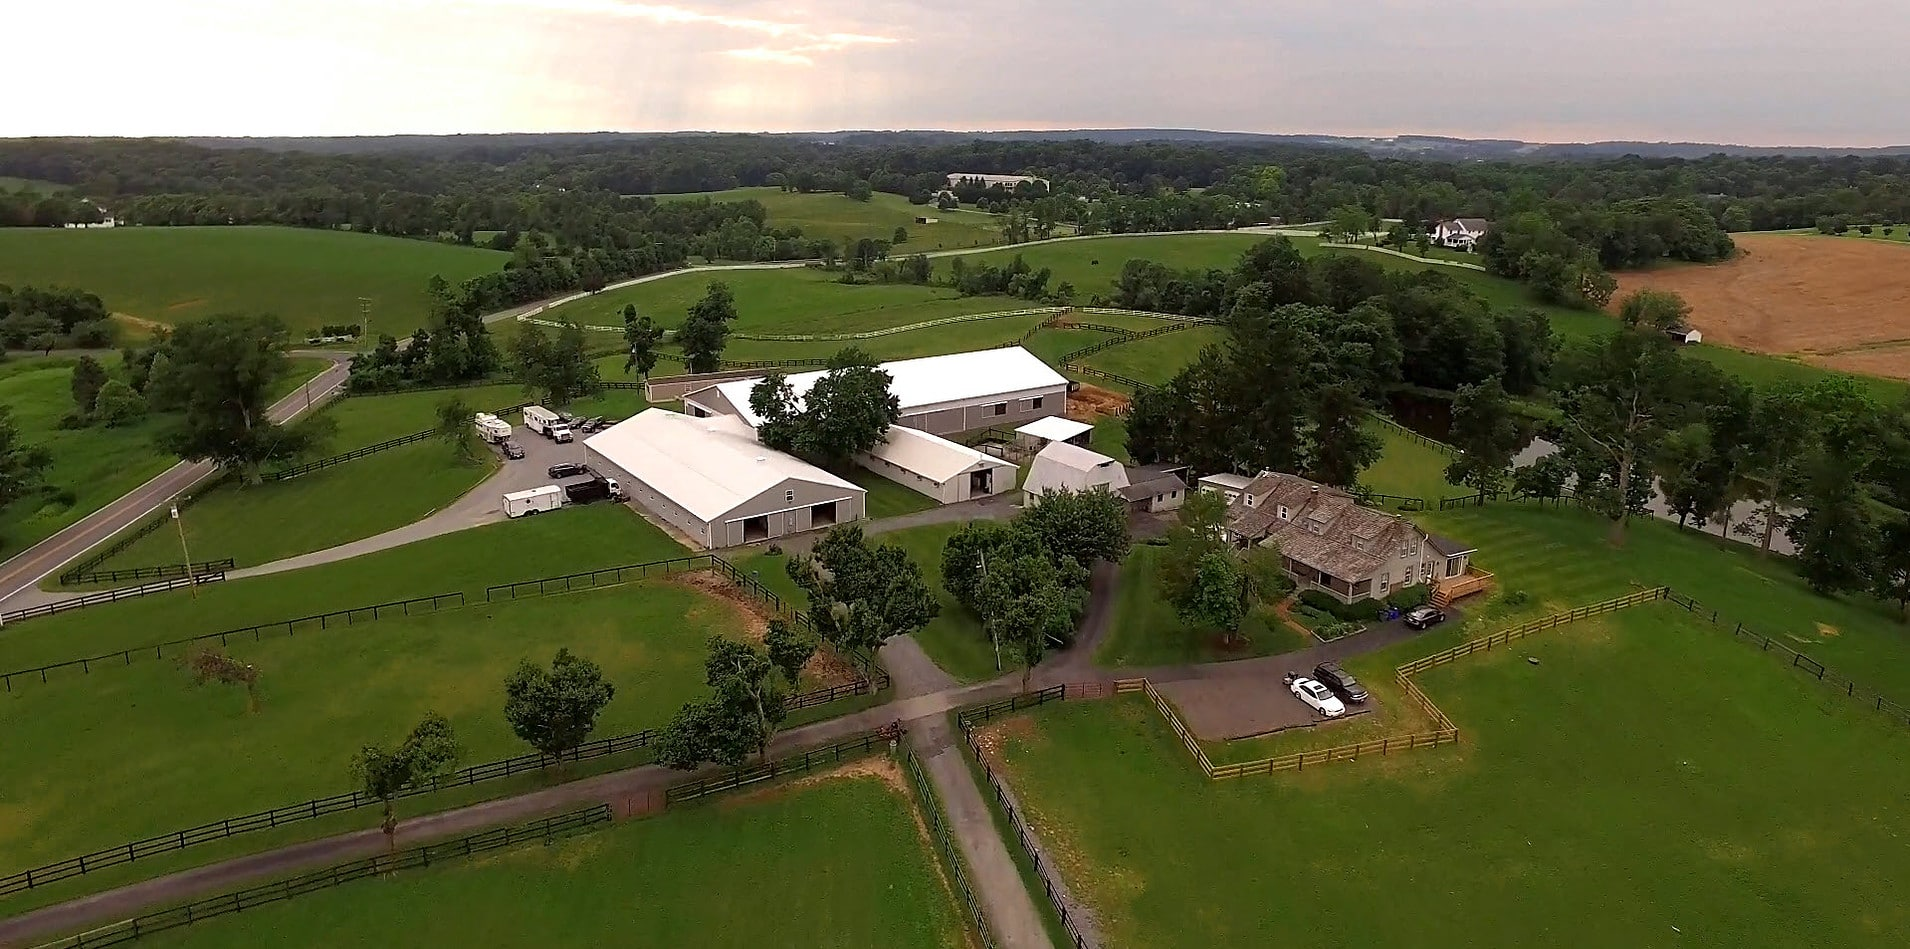 aerial view of bsw